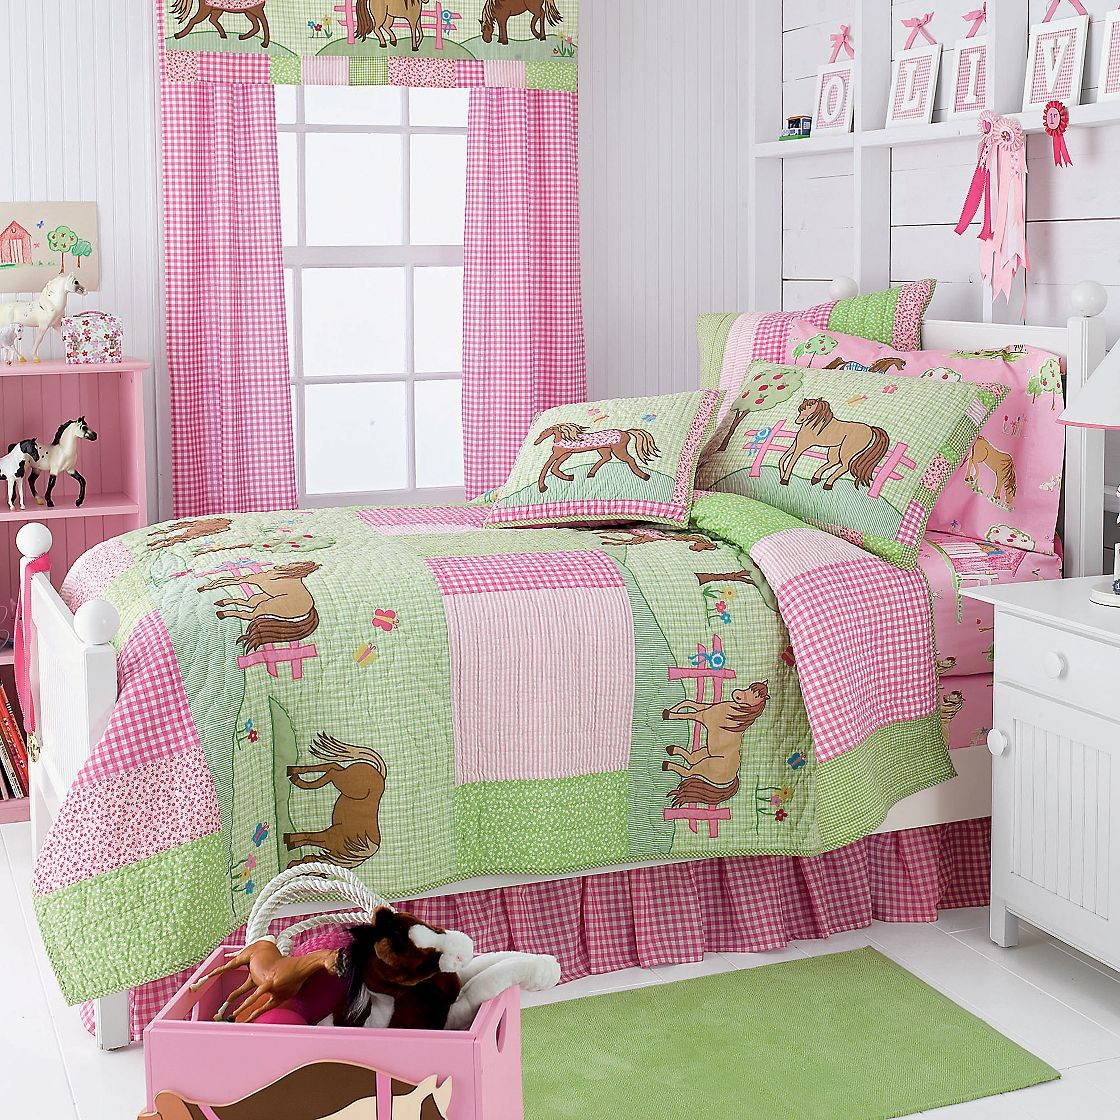 pony dreams quilt bedding